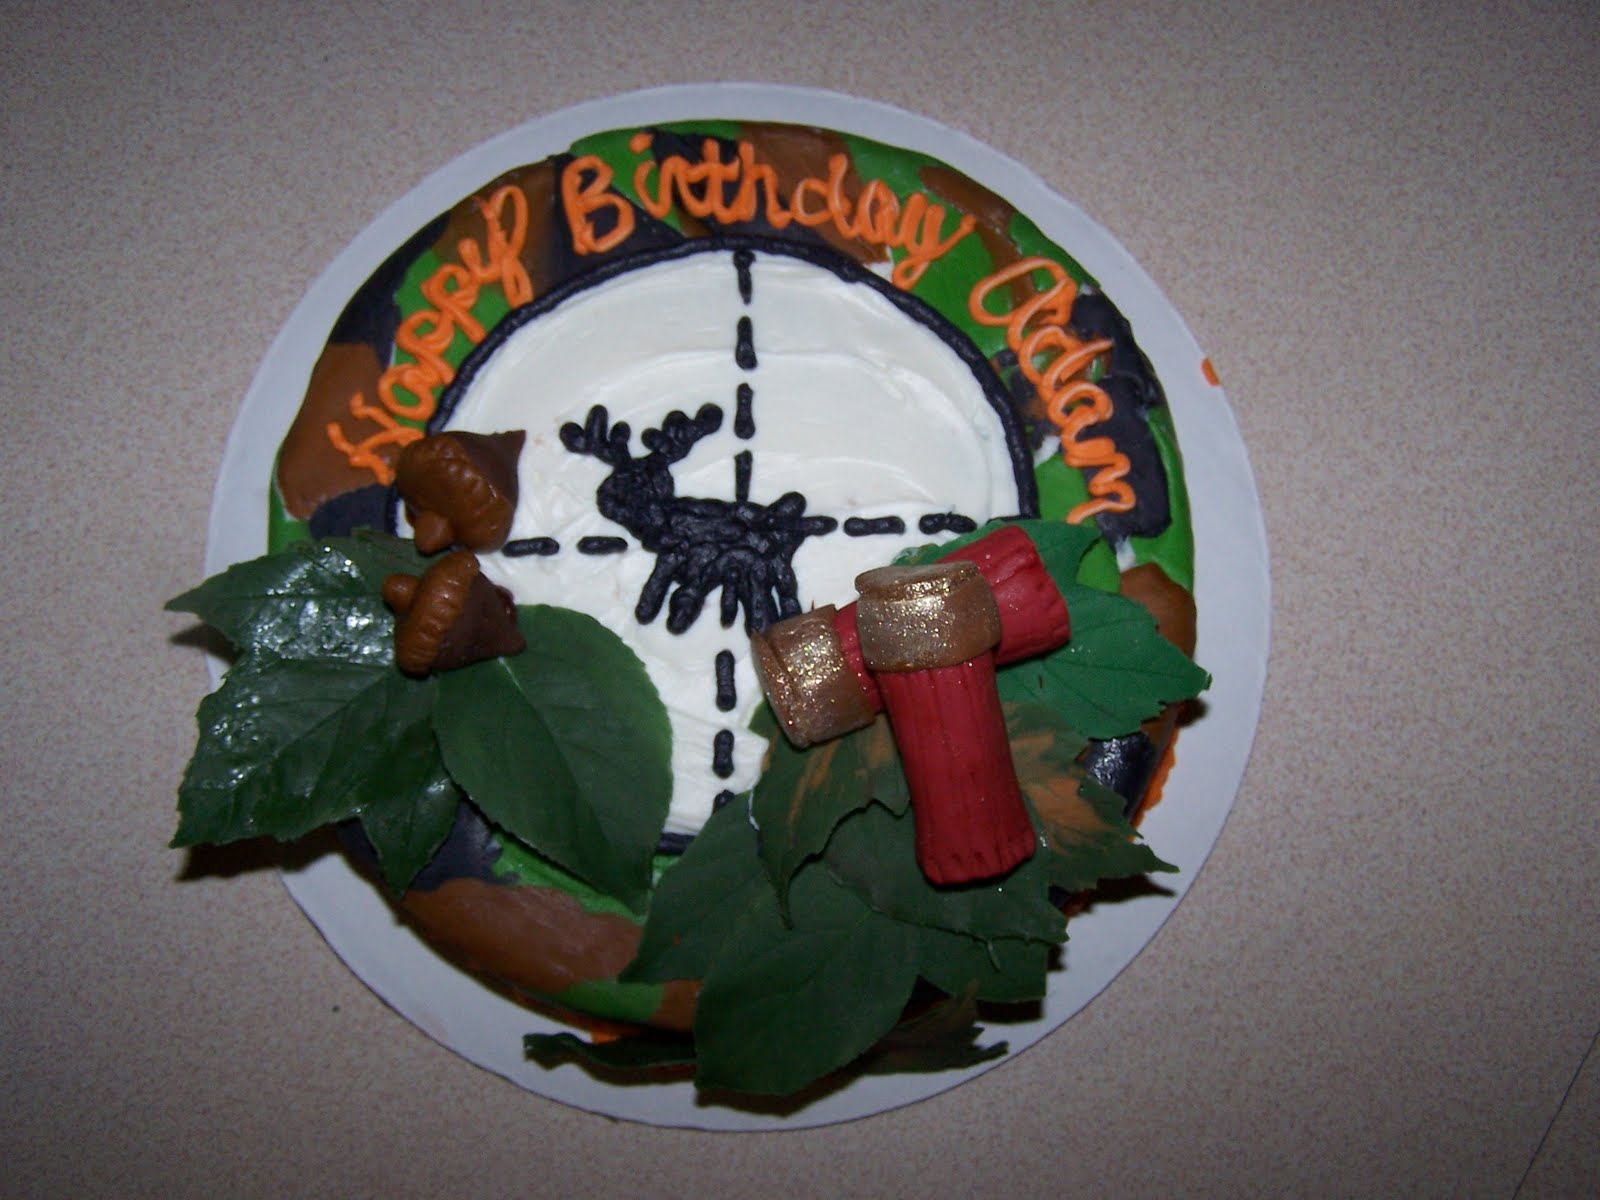 Hunting Cake Decor : Julie Daly Cakes: Hunting cake